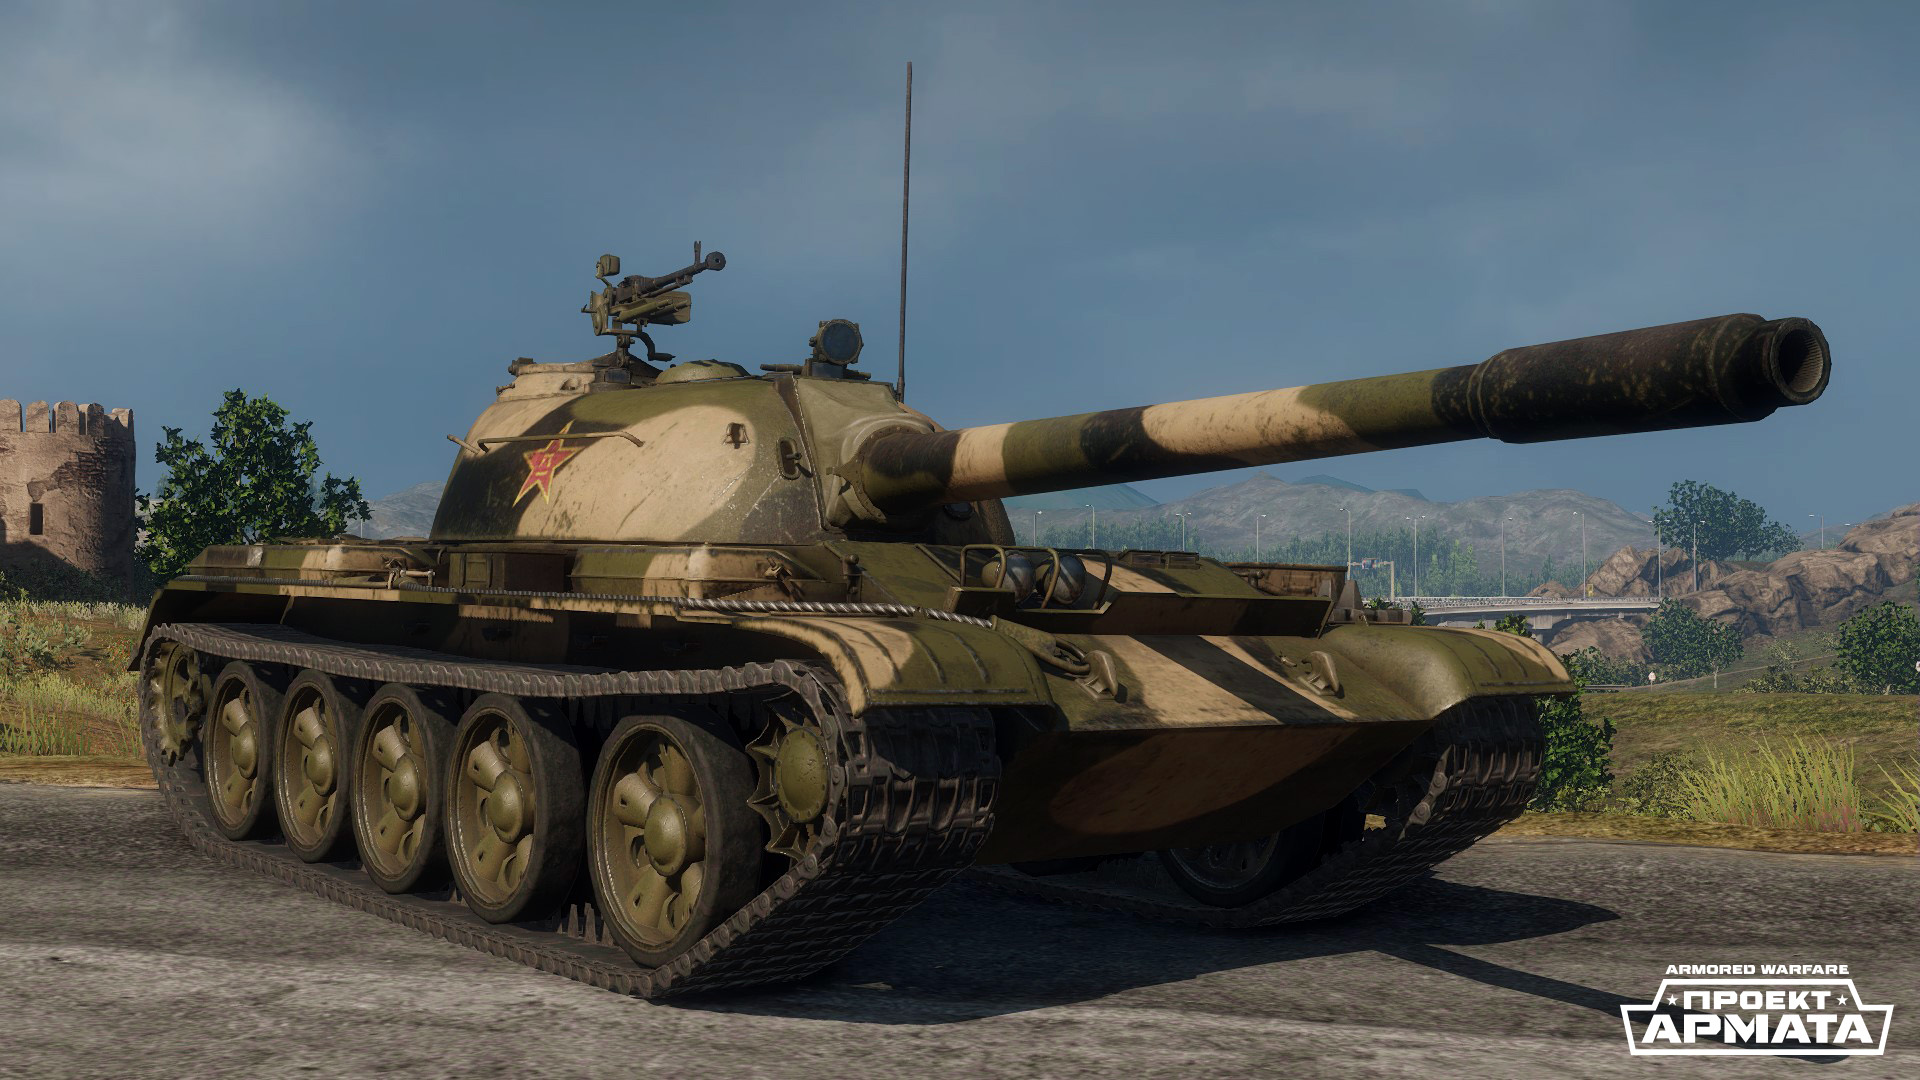 Armored Warfare: проект Армата - Type 59